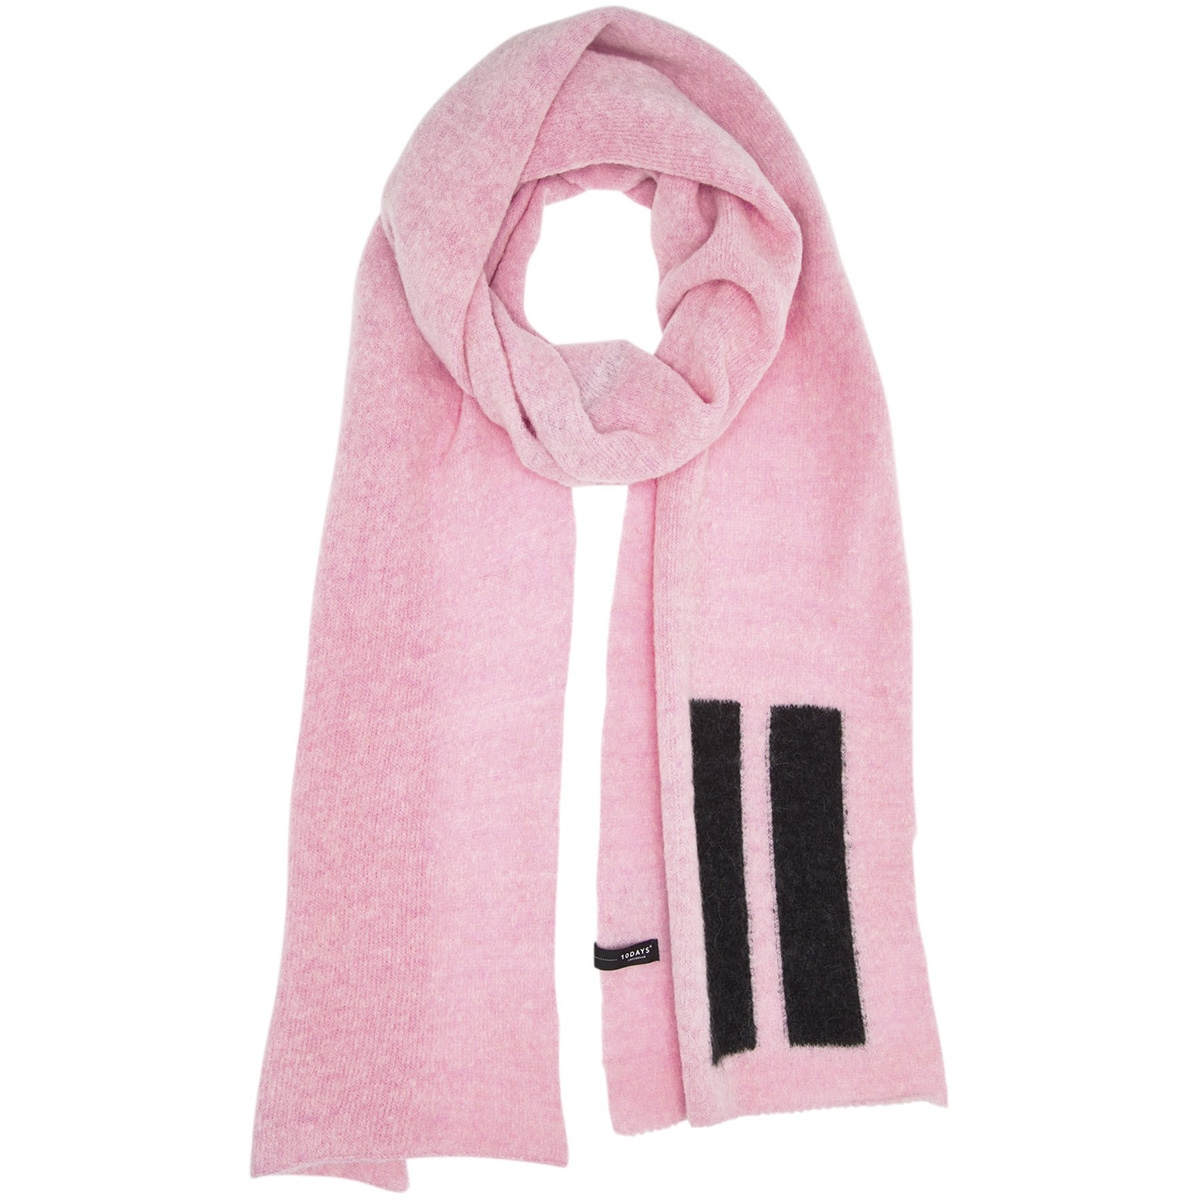 scarf 20 695 9104 10 days sjaal 1064 light pink